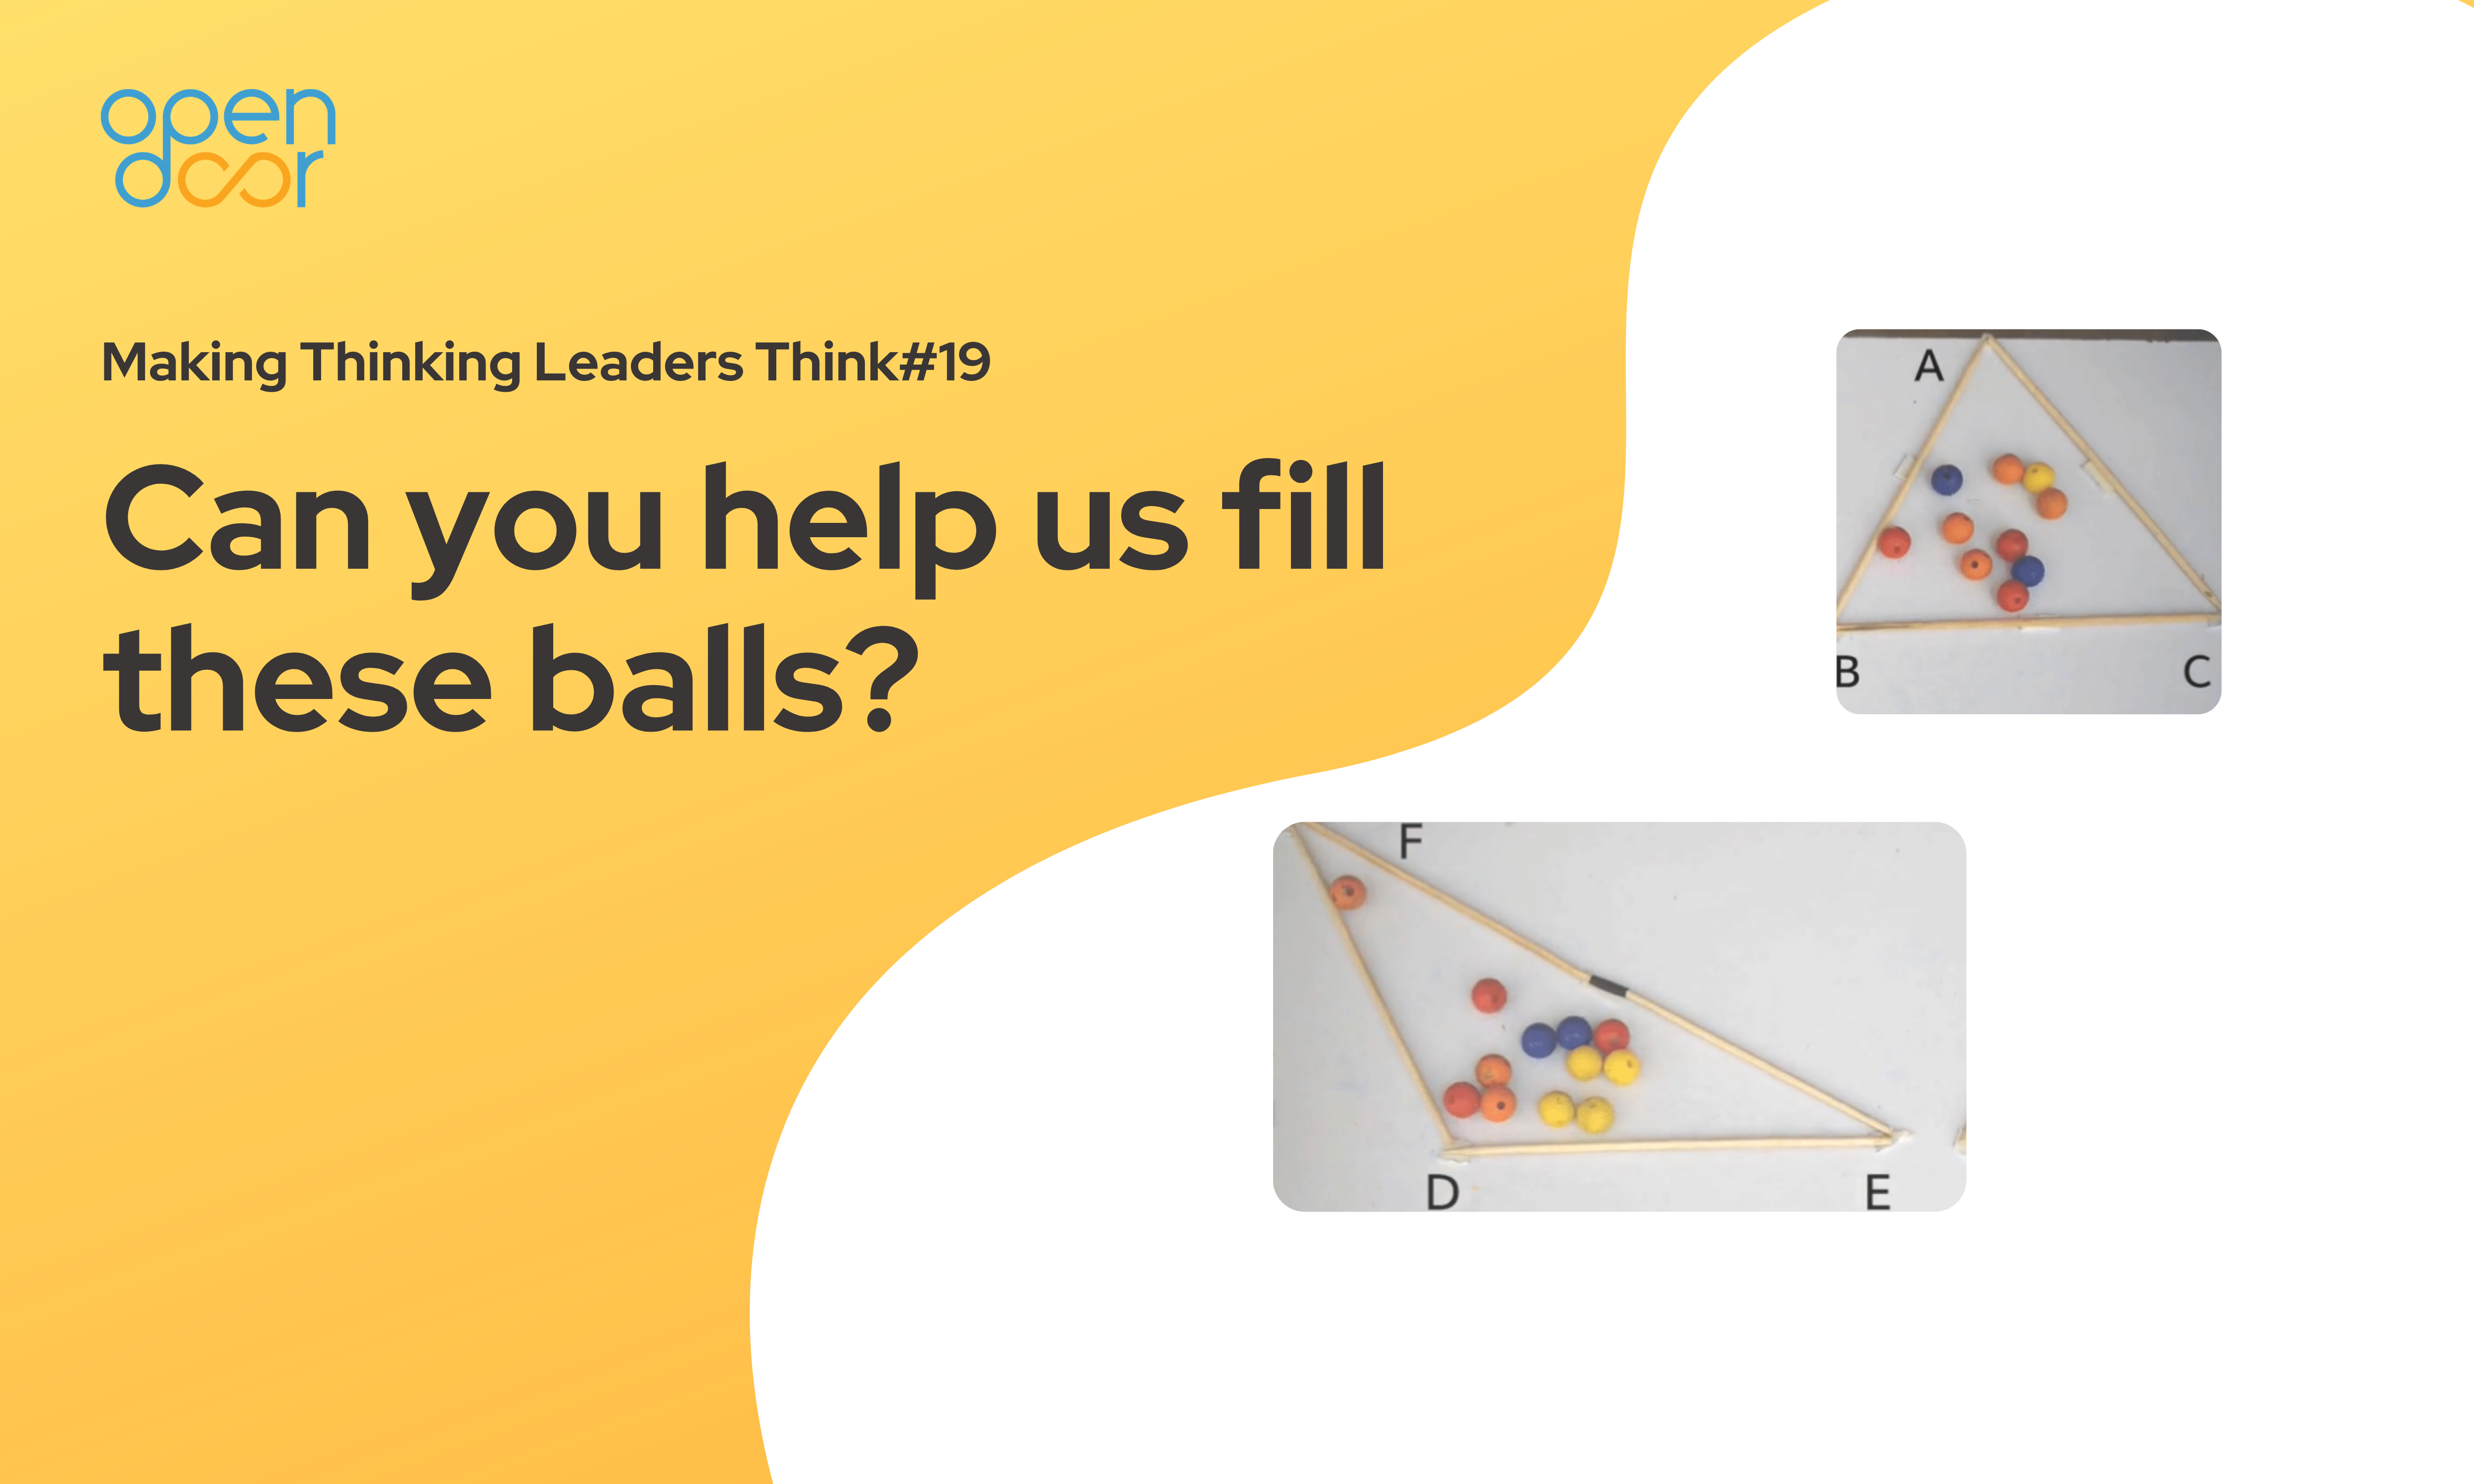 Q#19 Can you help us fill these balls?